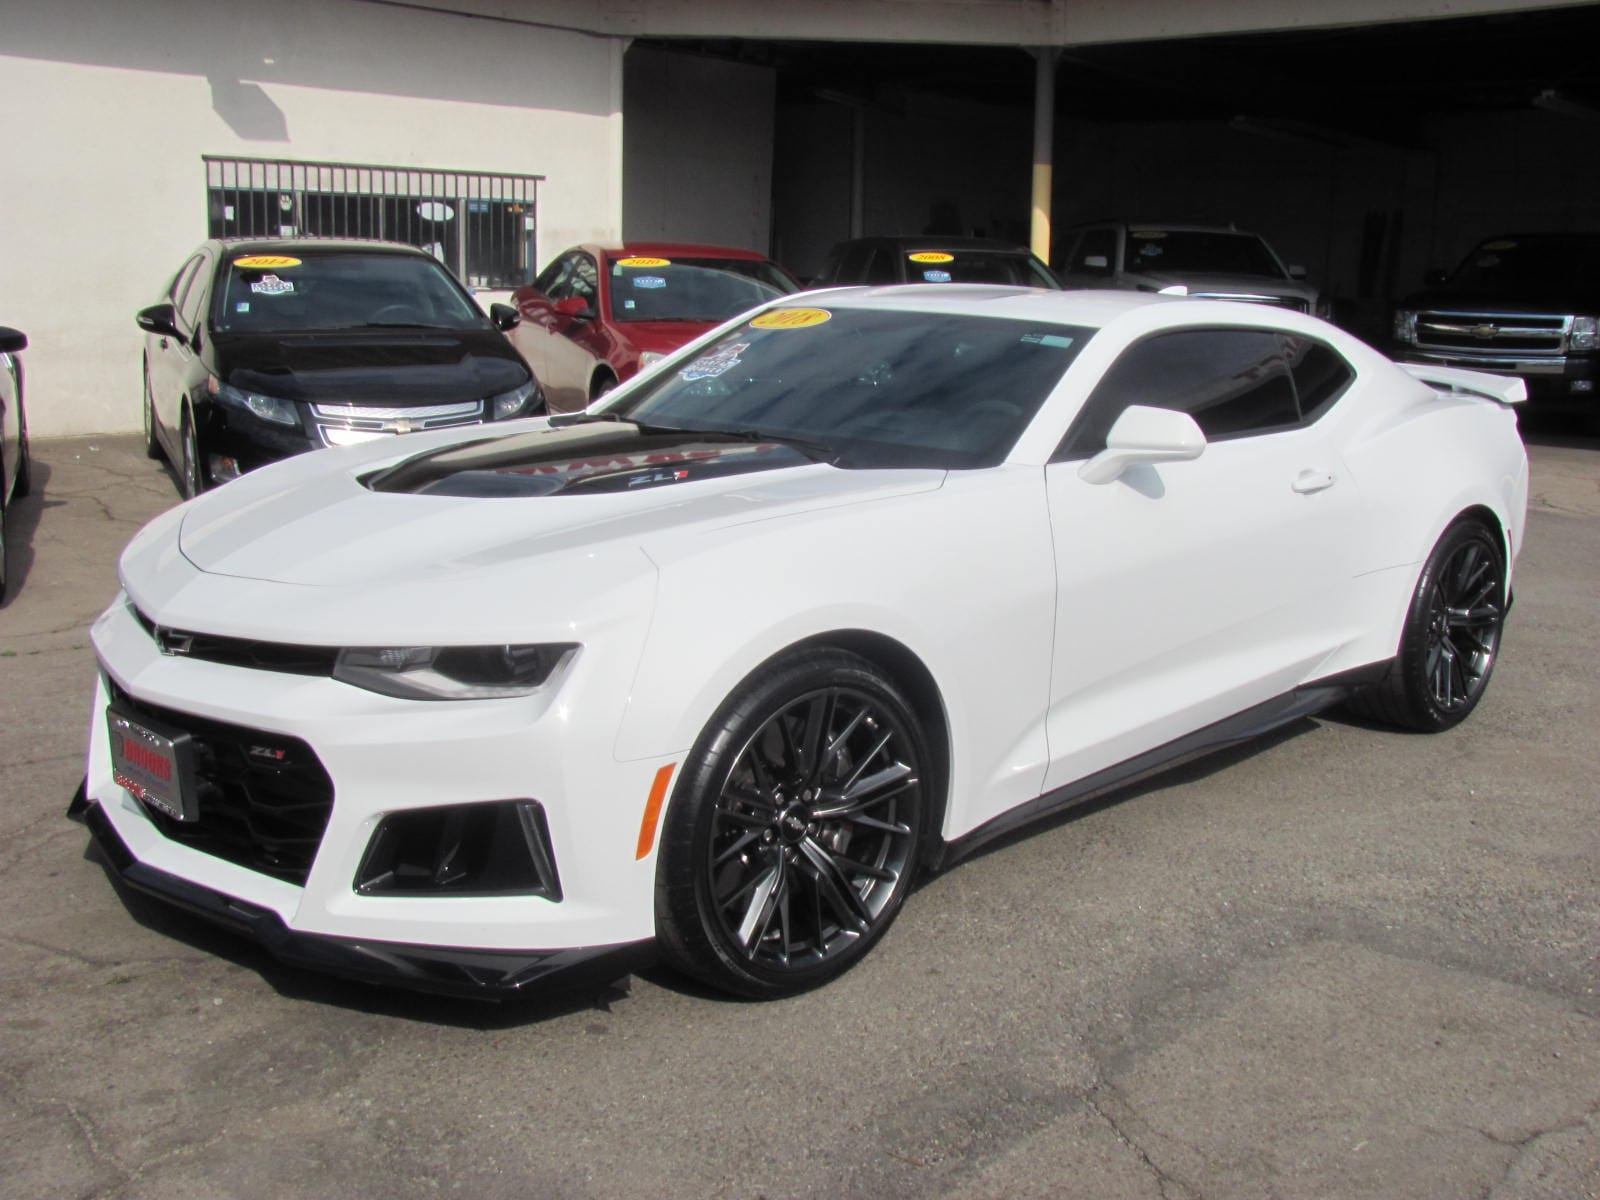 2018 Chevrolet Camaro ZL1 (Supercharged) Coupe